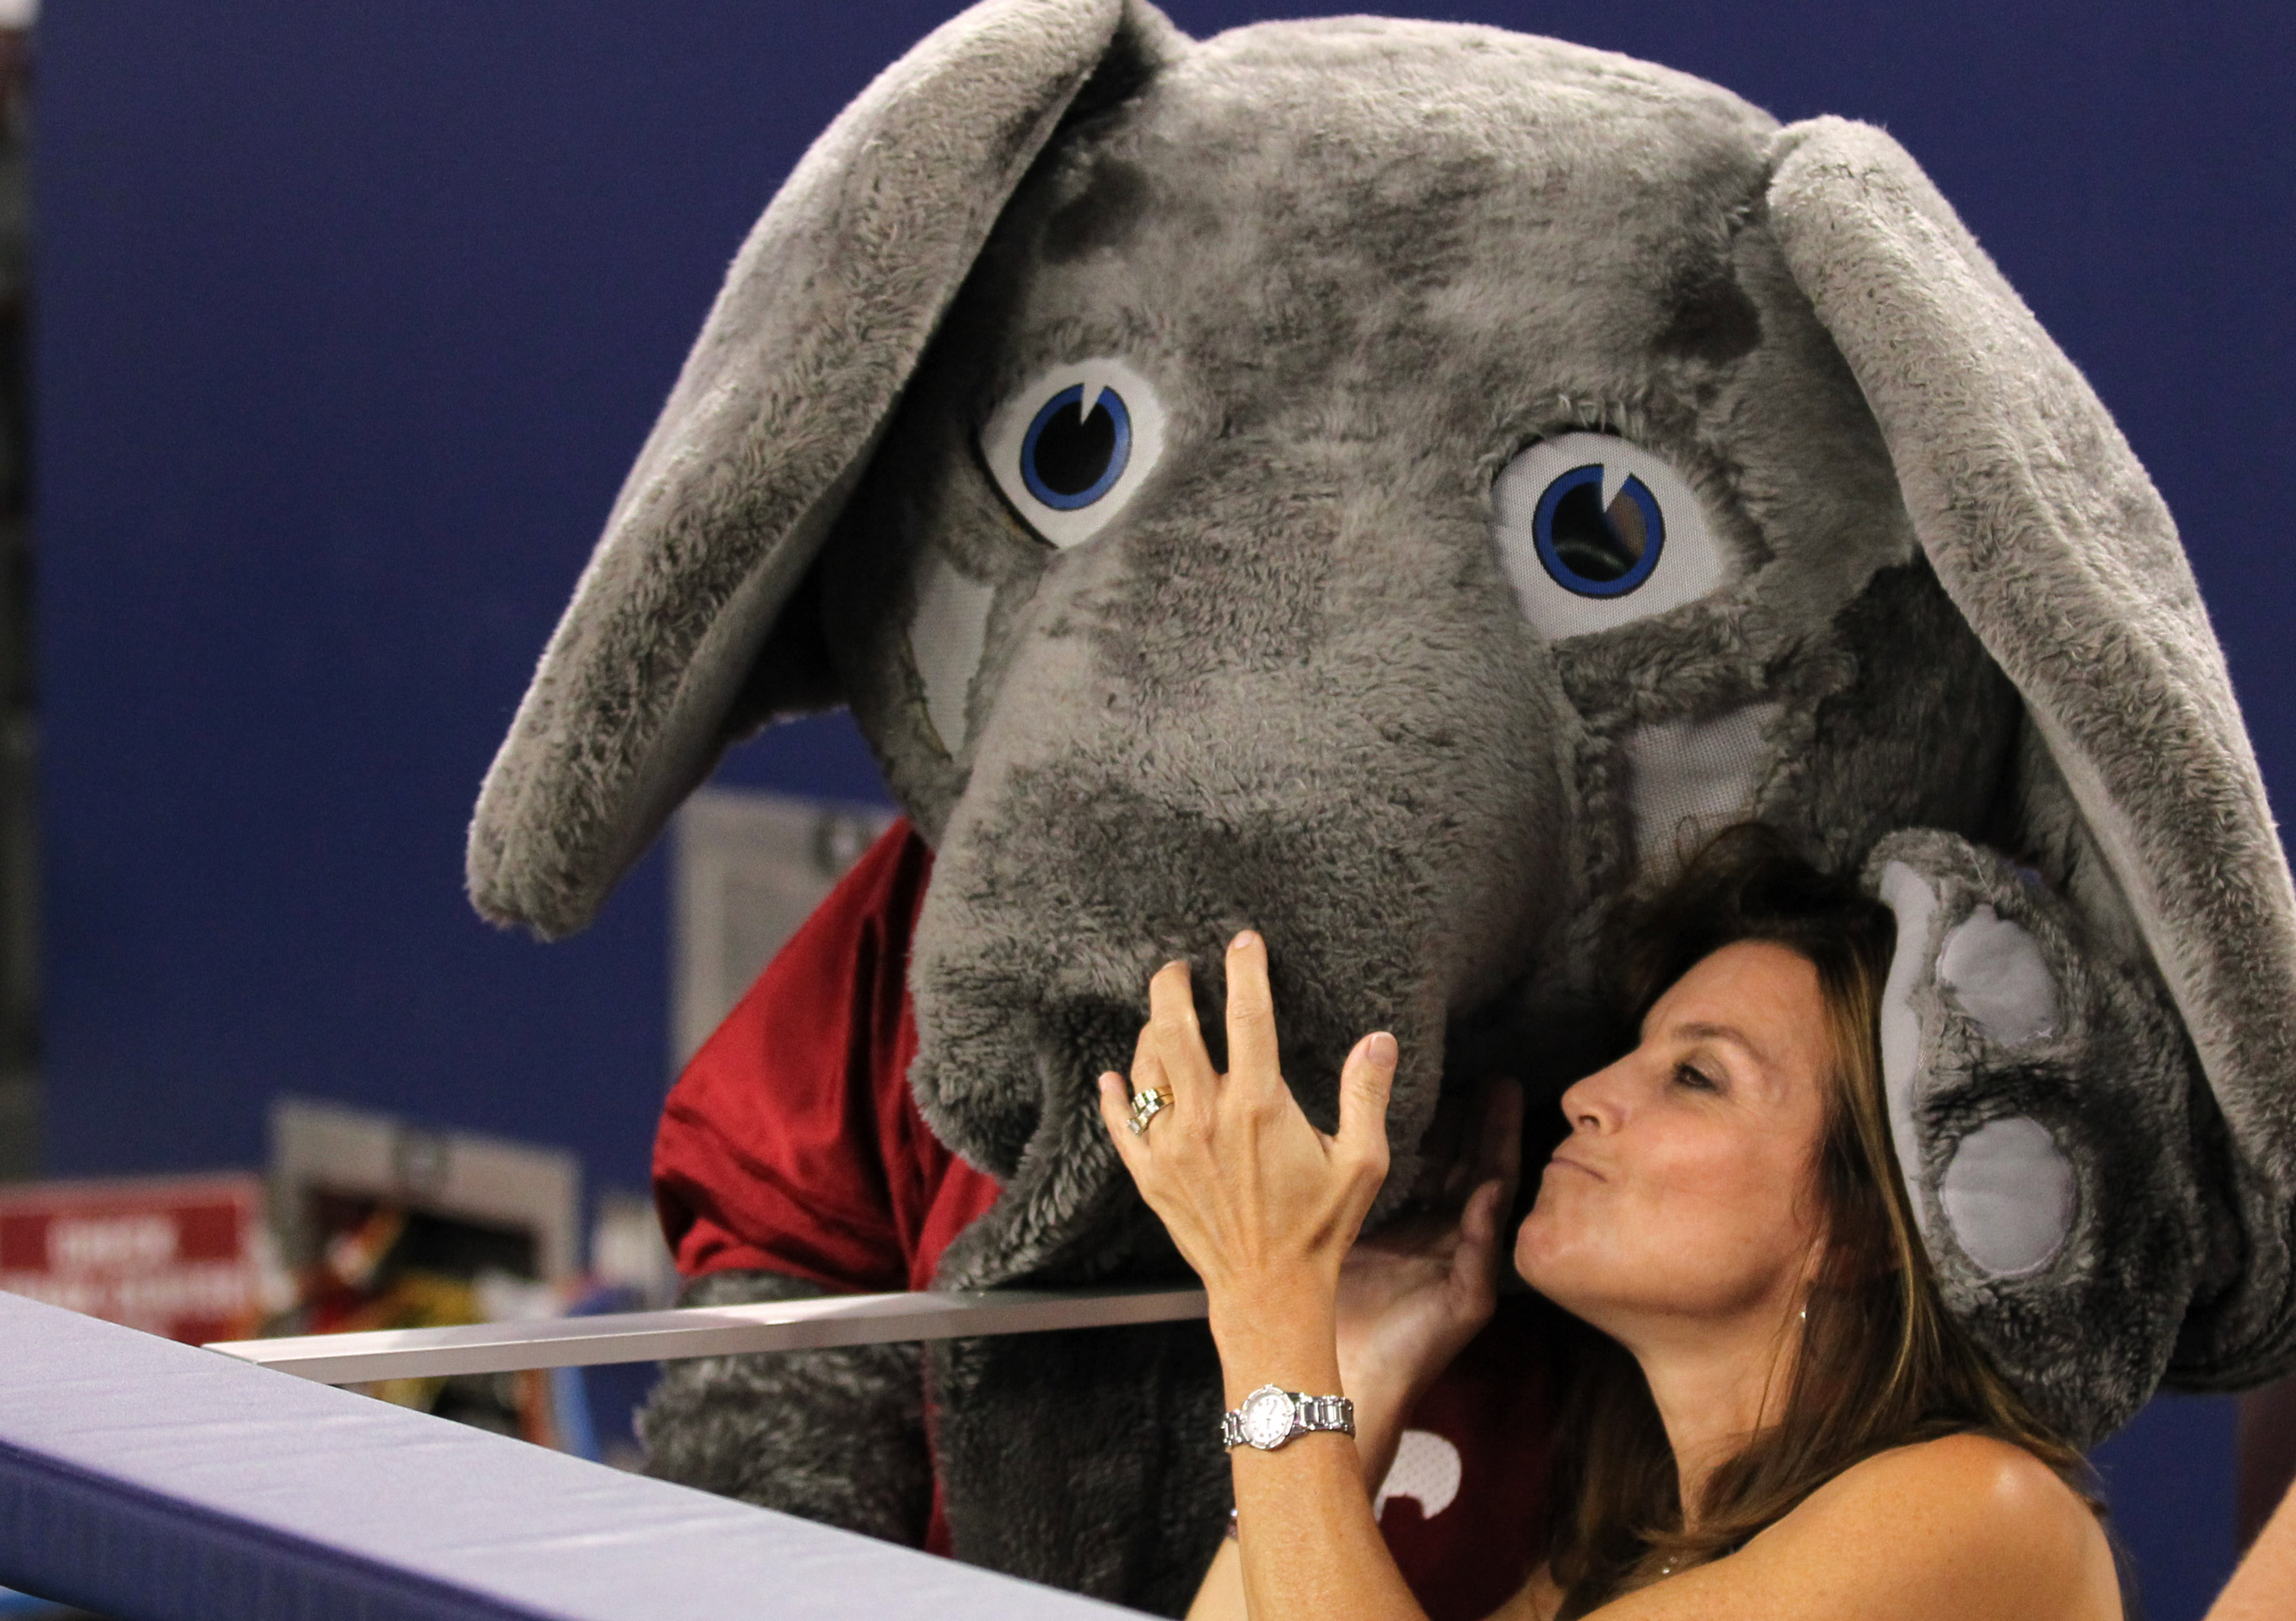 Sep 1, 2012; Arlington, TX, USA; Alabama Crimson Tide mascot Big Al plays with a fan during the game against the Michigan Wolverines at Cowboys Stadium. Mandatory Credit: Matthew Emmons-US PRESSWIRE